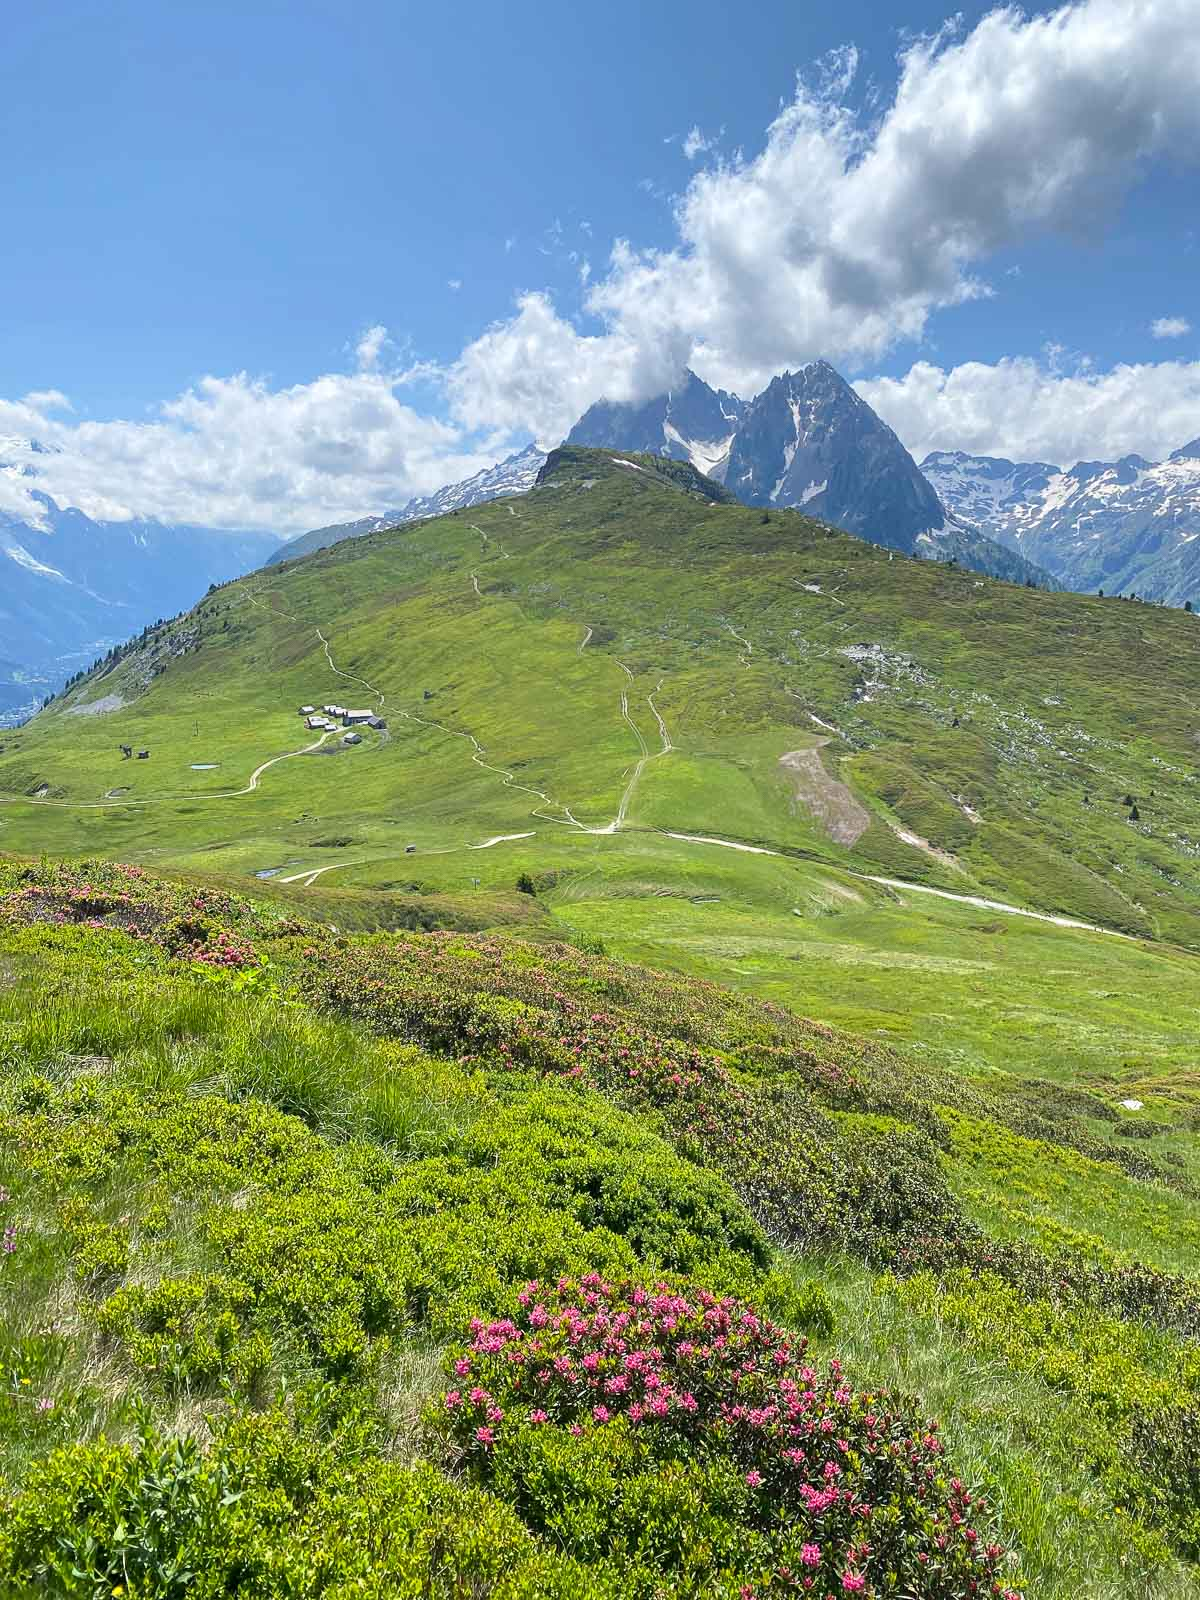 Vertical landscape photo of the Alpine meadows and mountain peaks near Le Tour, France.